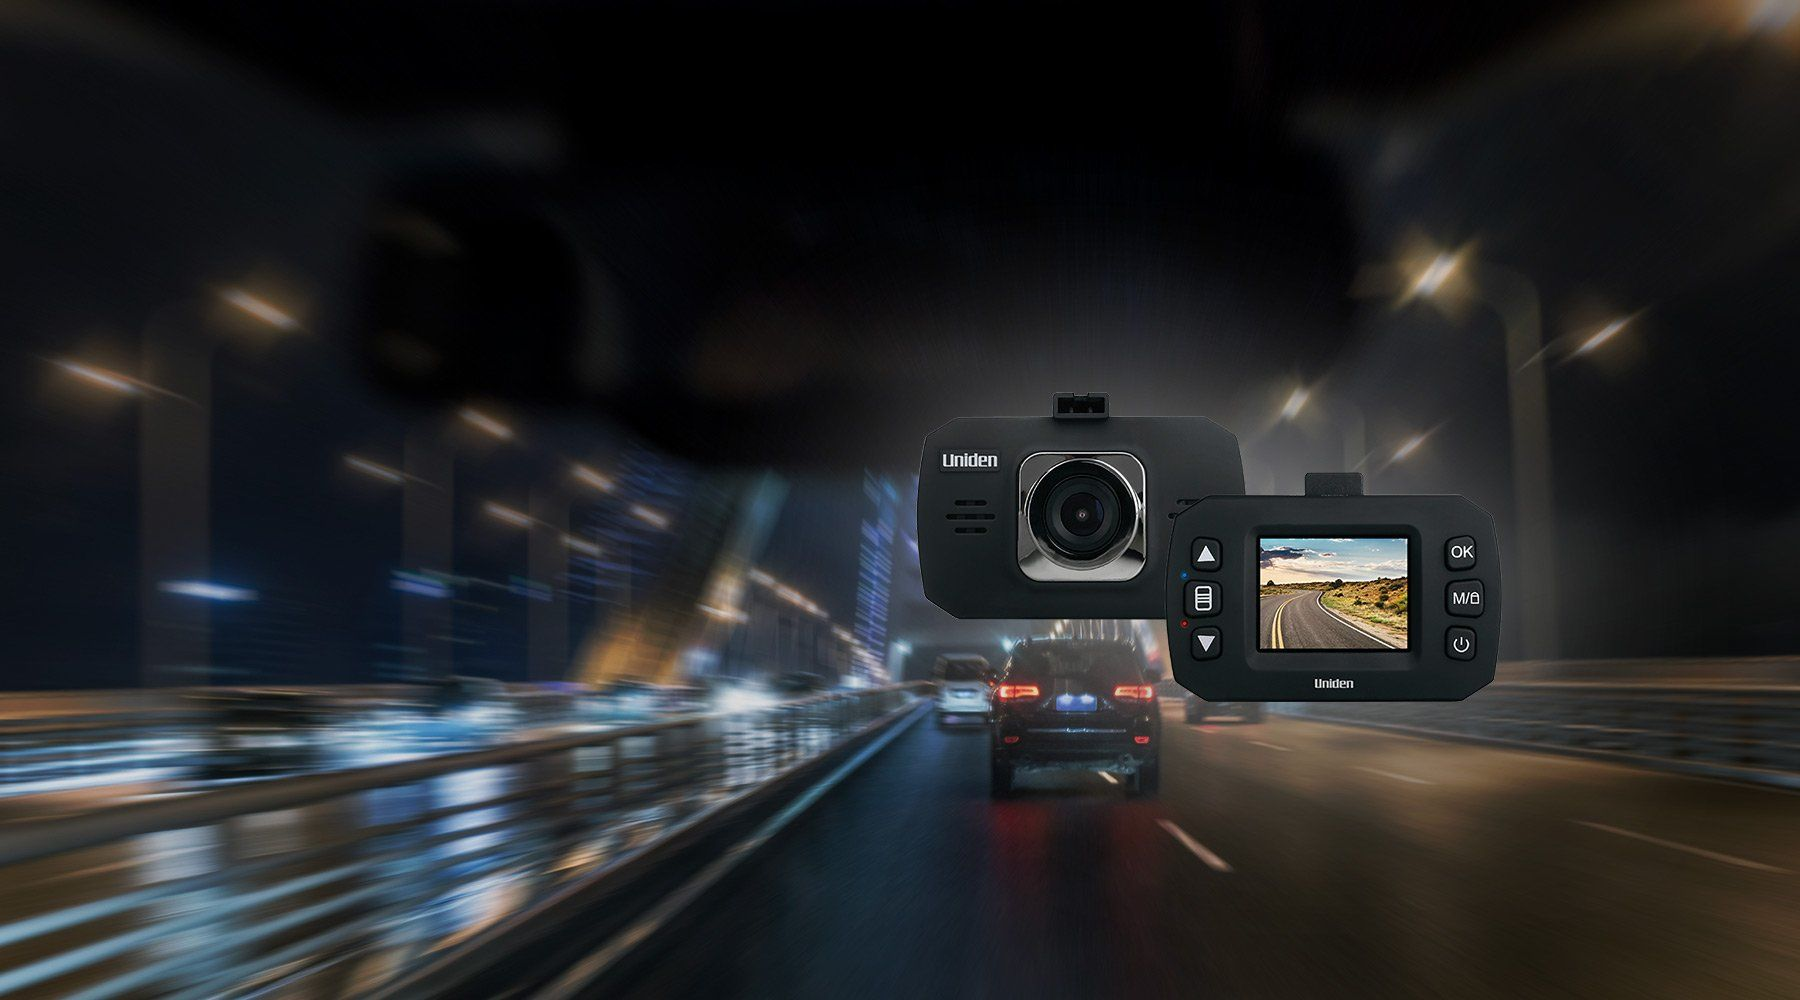 Uniden Dash Cameras Save Your Drive